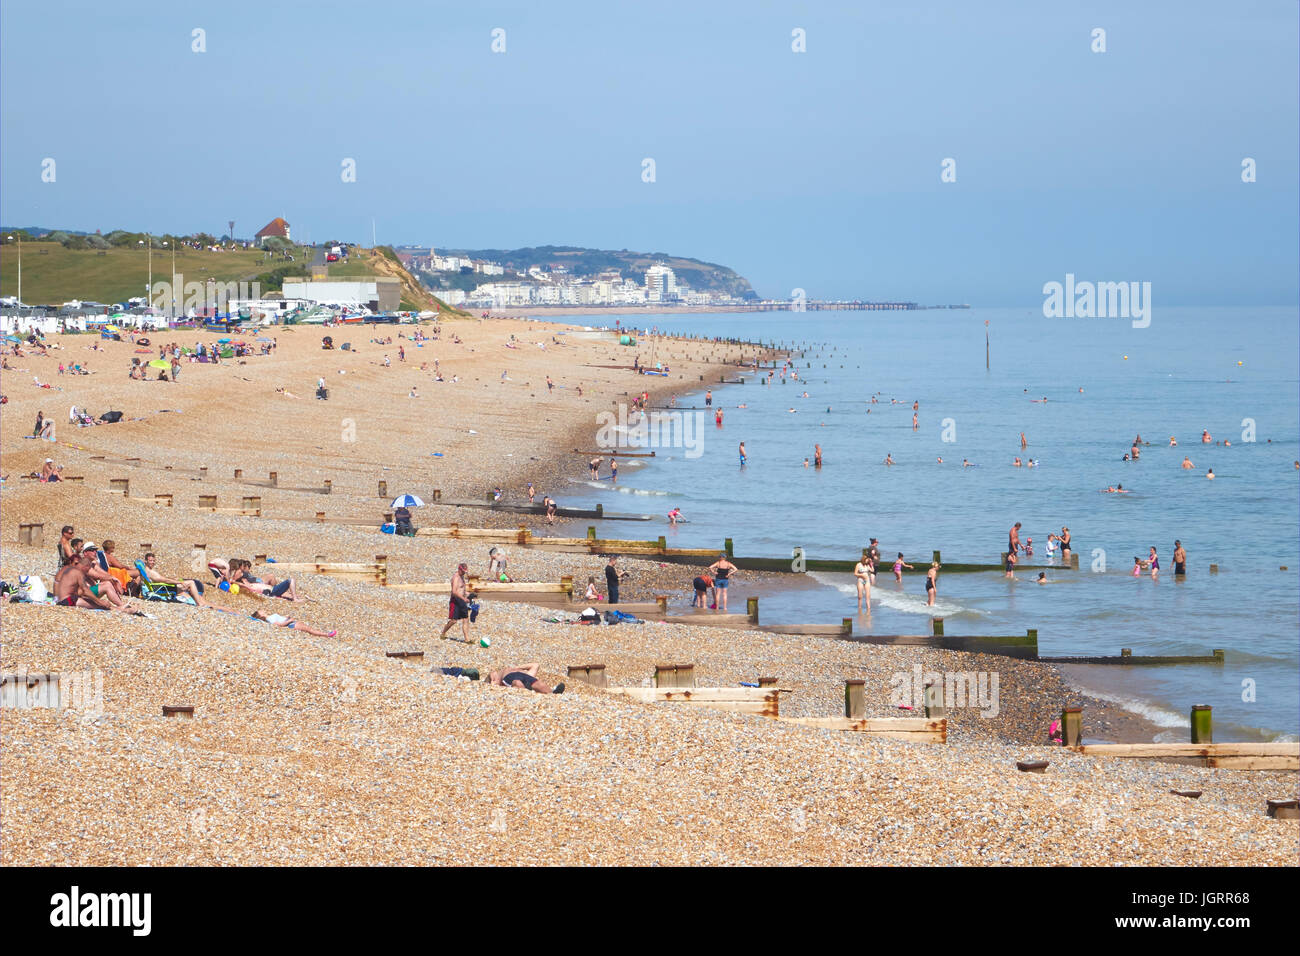 Bexhill-0n-Sea beach, East Sussex, England, UK - Stock Image